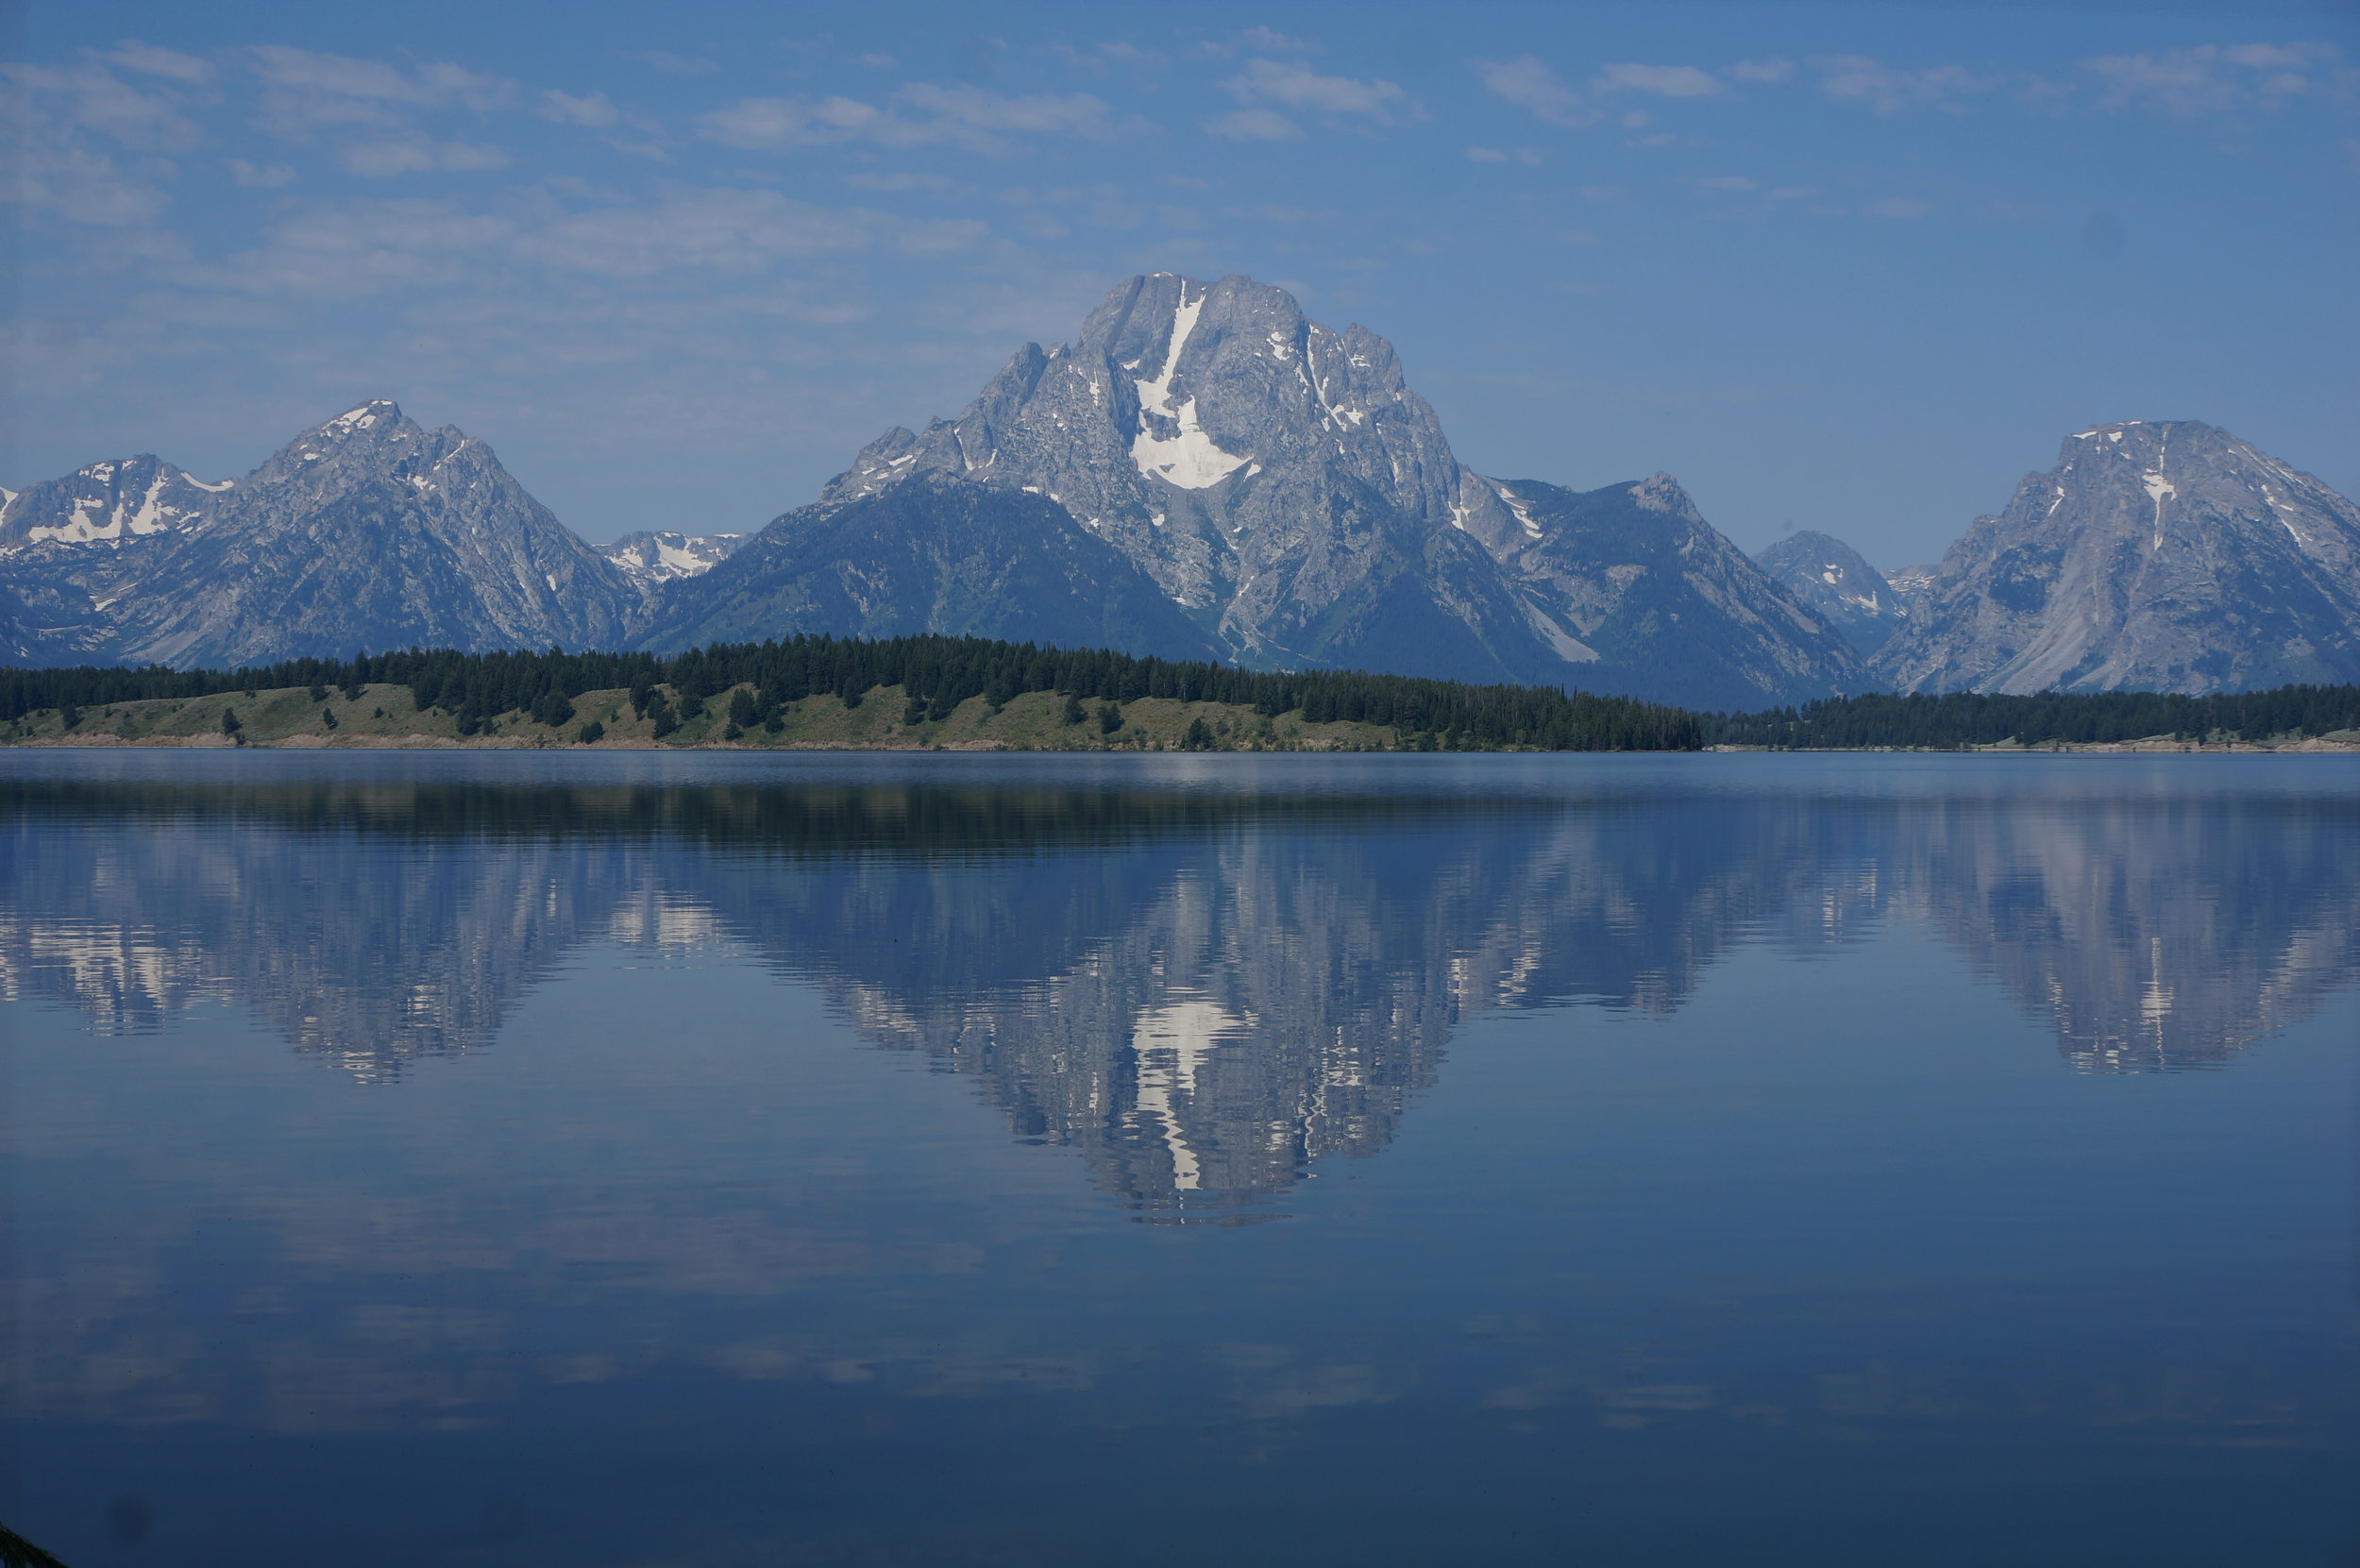 From Teton Park Road, another view of Jackson Lake at one of the turnouts.